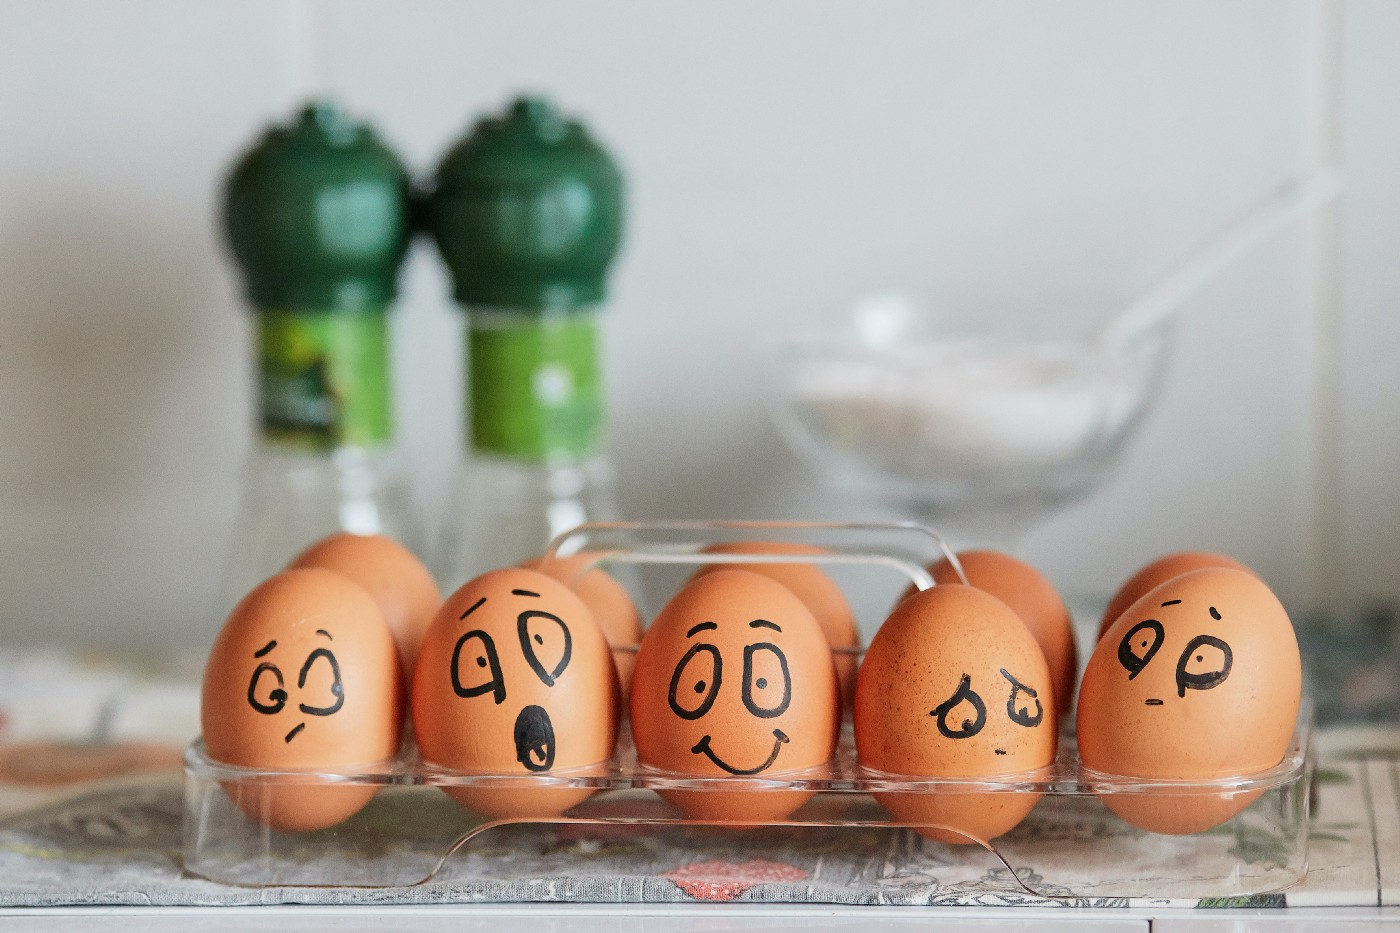 A carton of eggs with funny faces drawn on them in black marker.